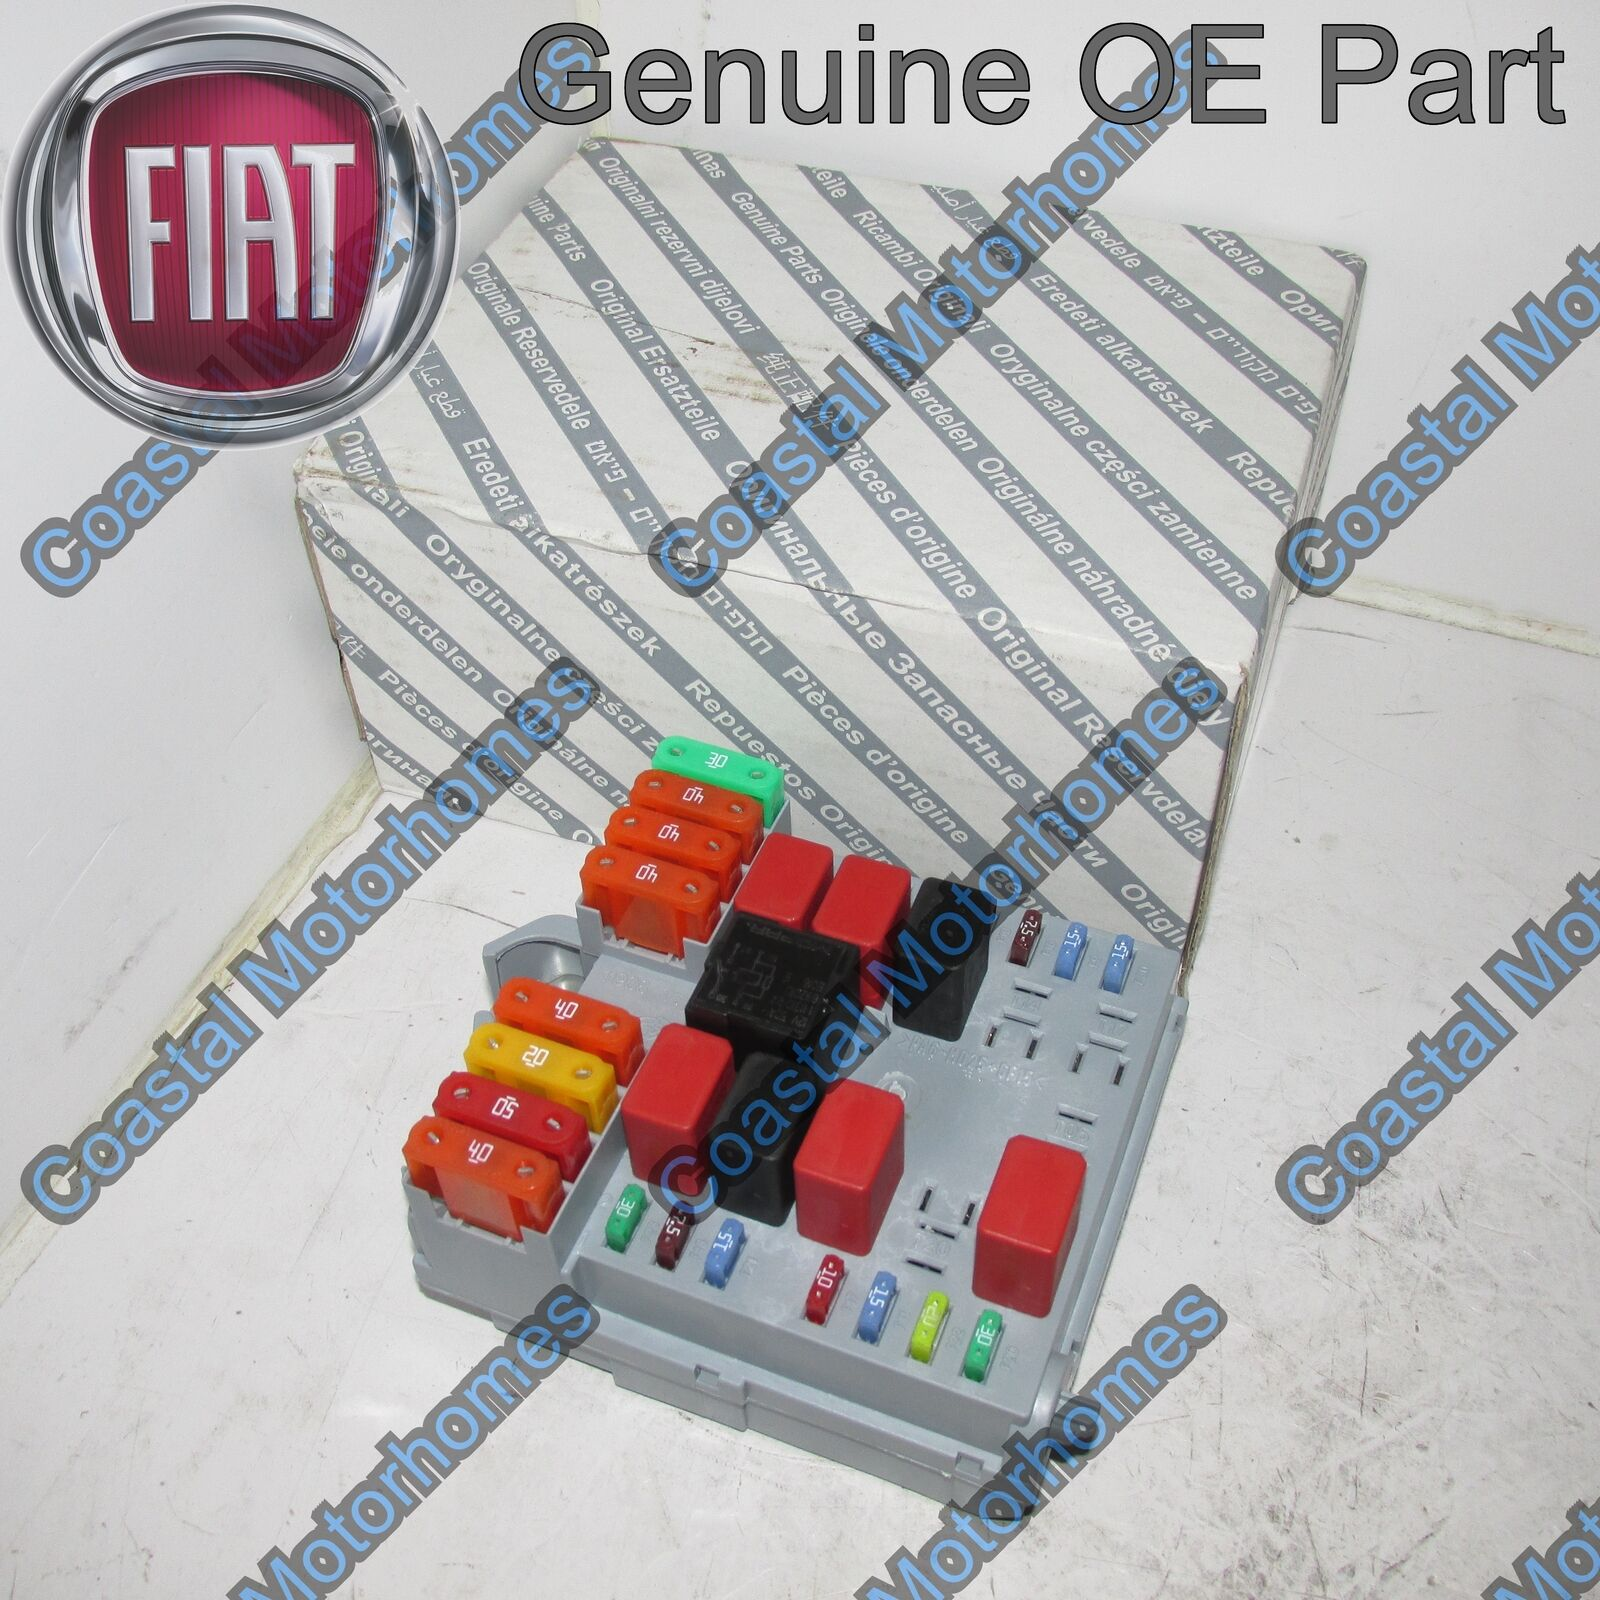 Fiat Ducato Peugeot Boxer Citroen Relay Fuse Box 2011-Onwards OE 1 of 3FREE  Shipping ...